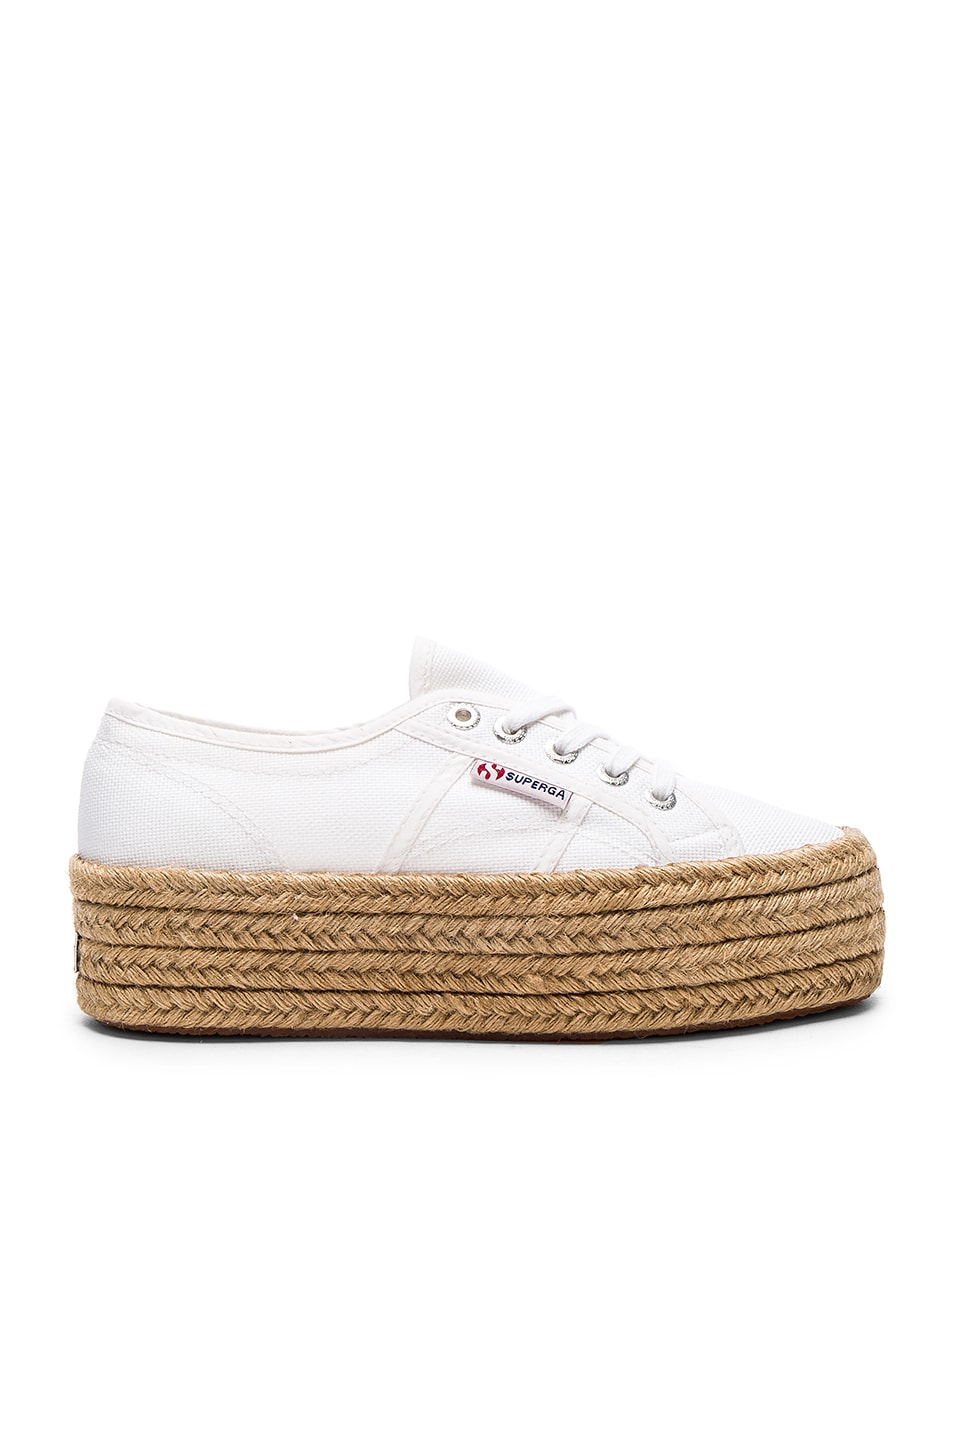 Photo of 2790 Cotro Sneaker by Superga shoes